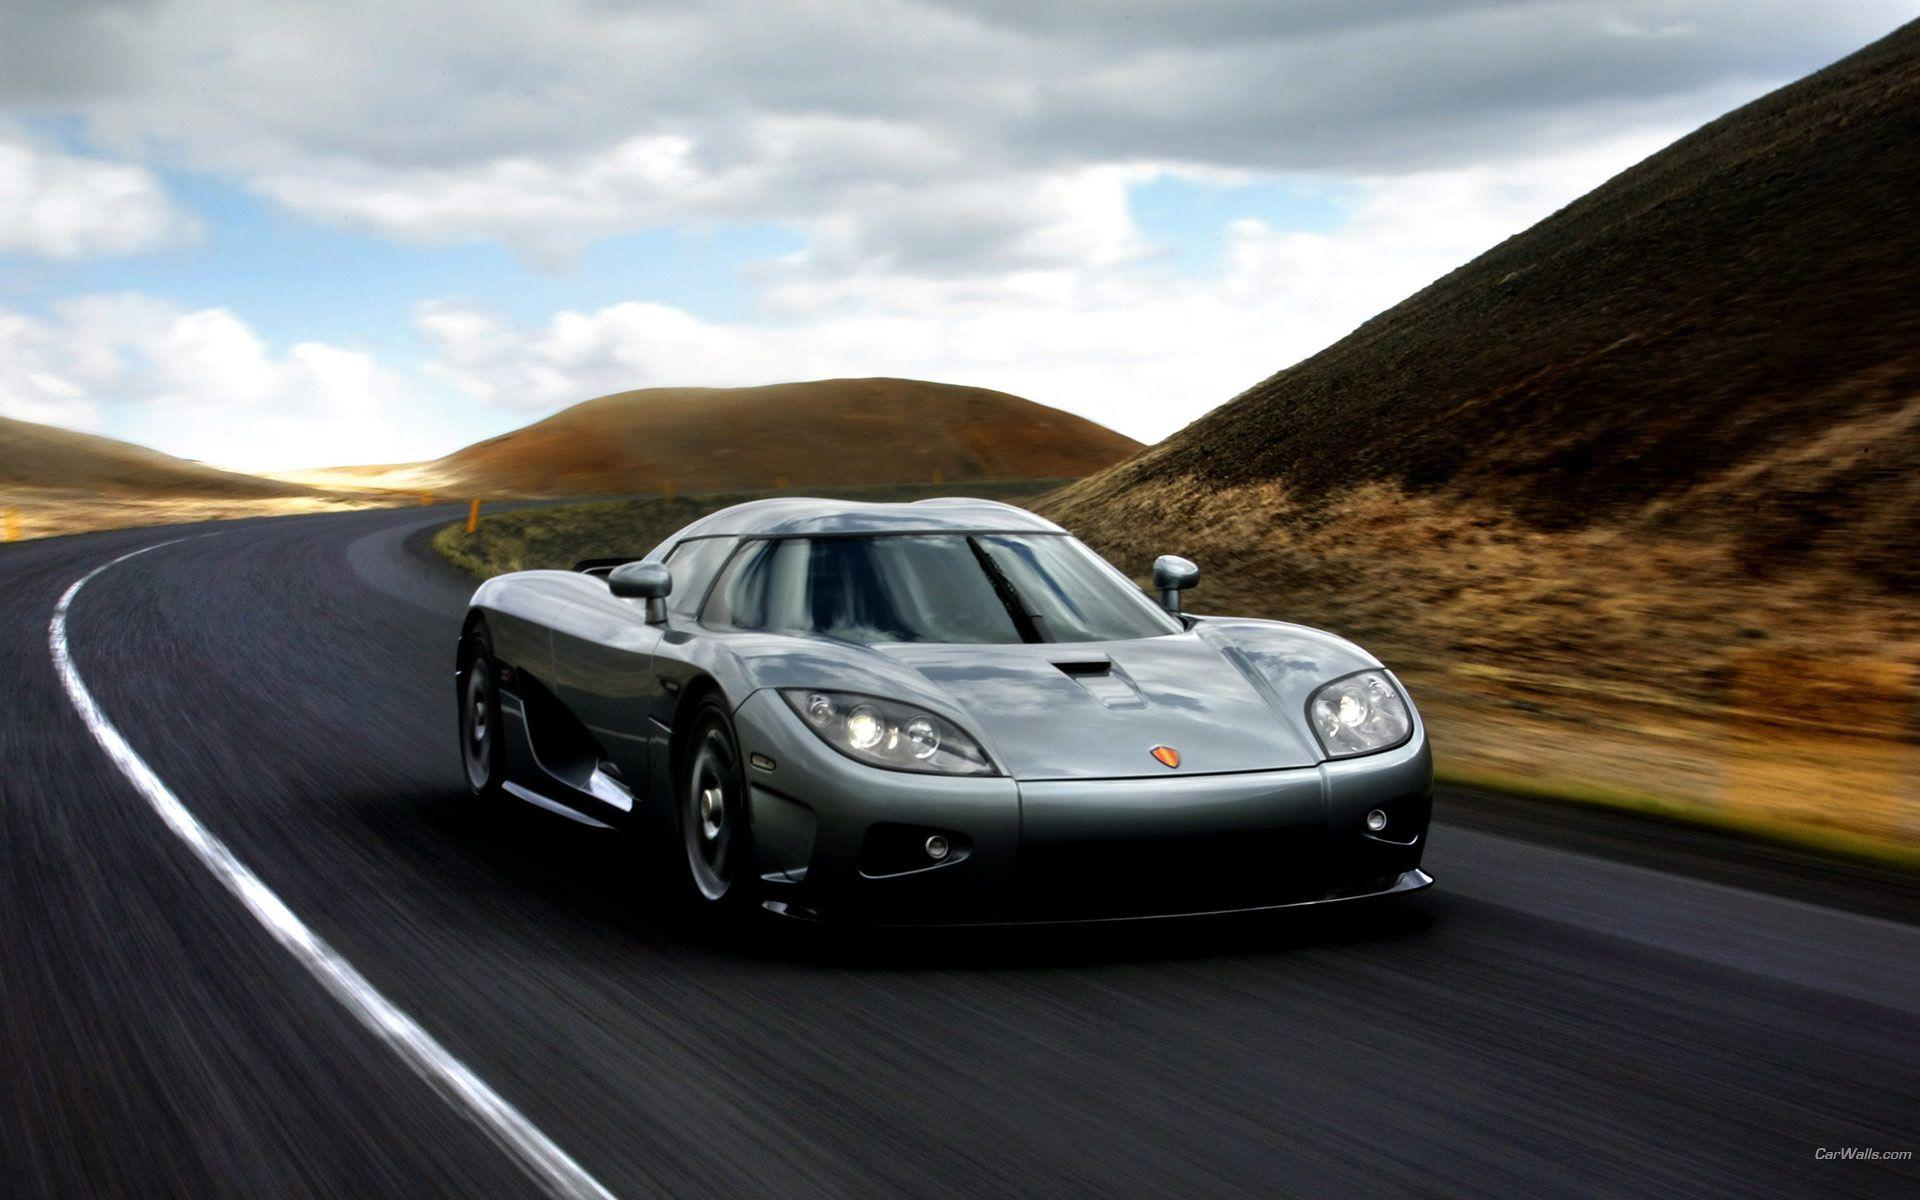 Wallpapers desktop koenigsegg cars 1920x1200 px - #514 ...